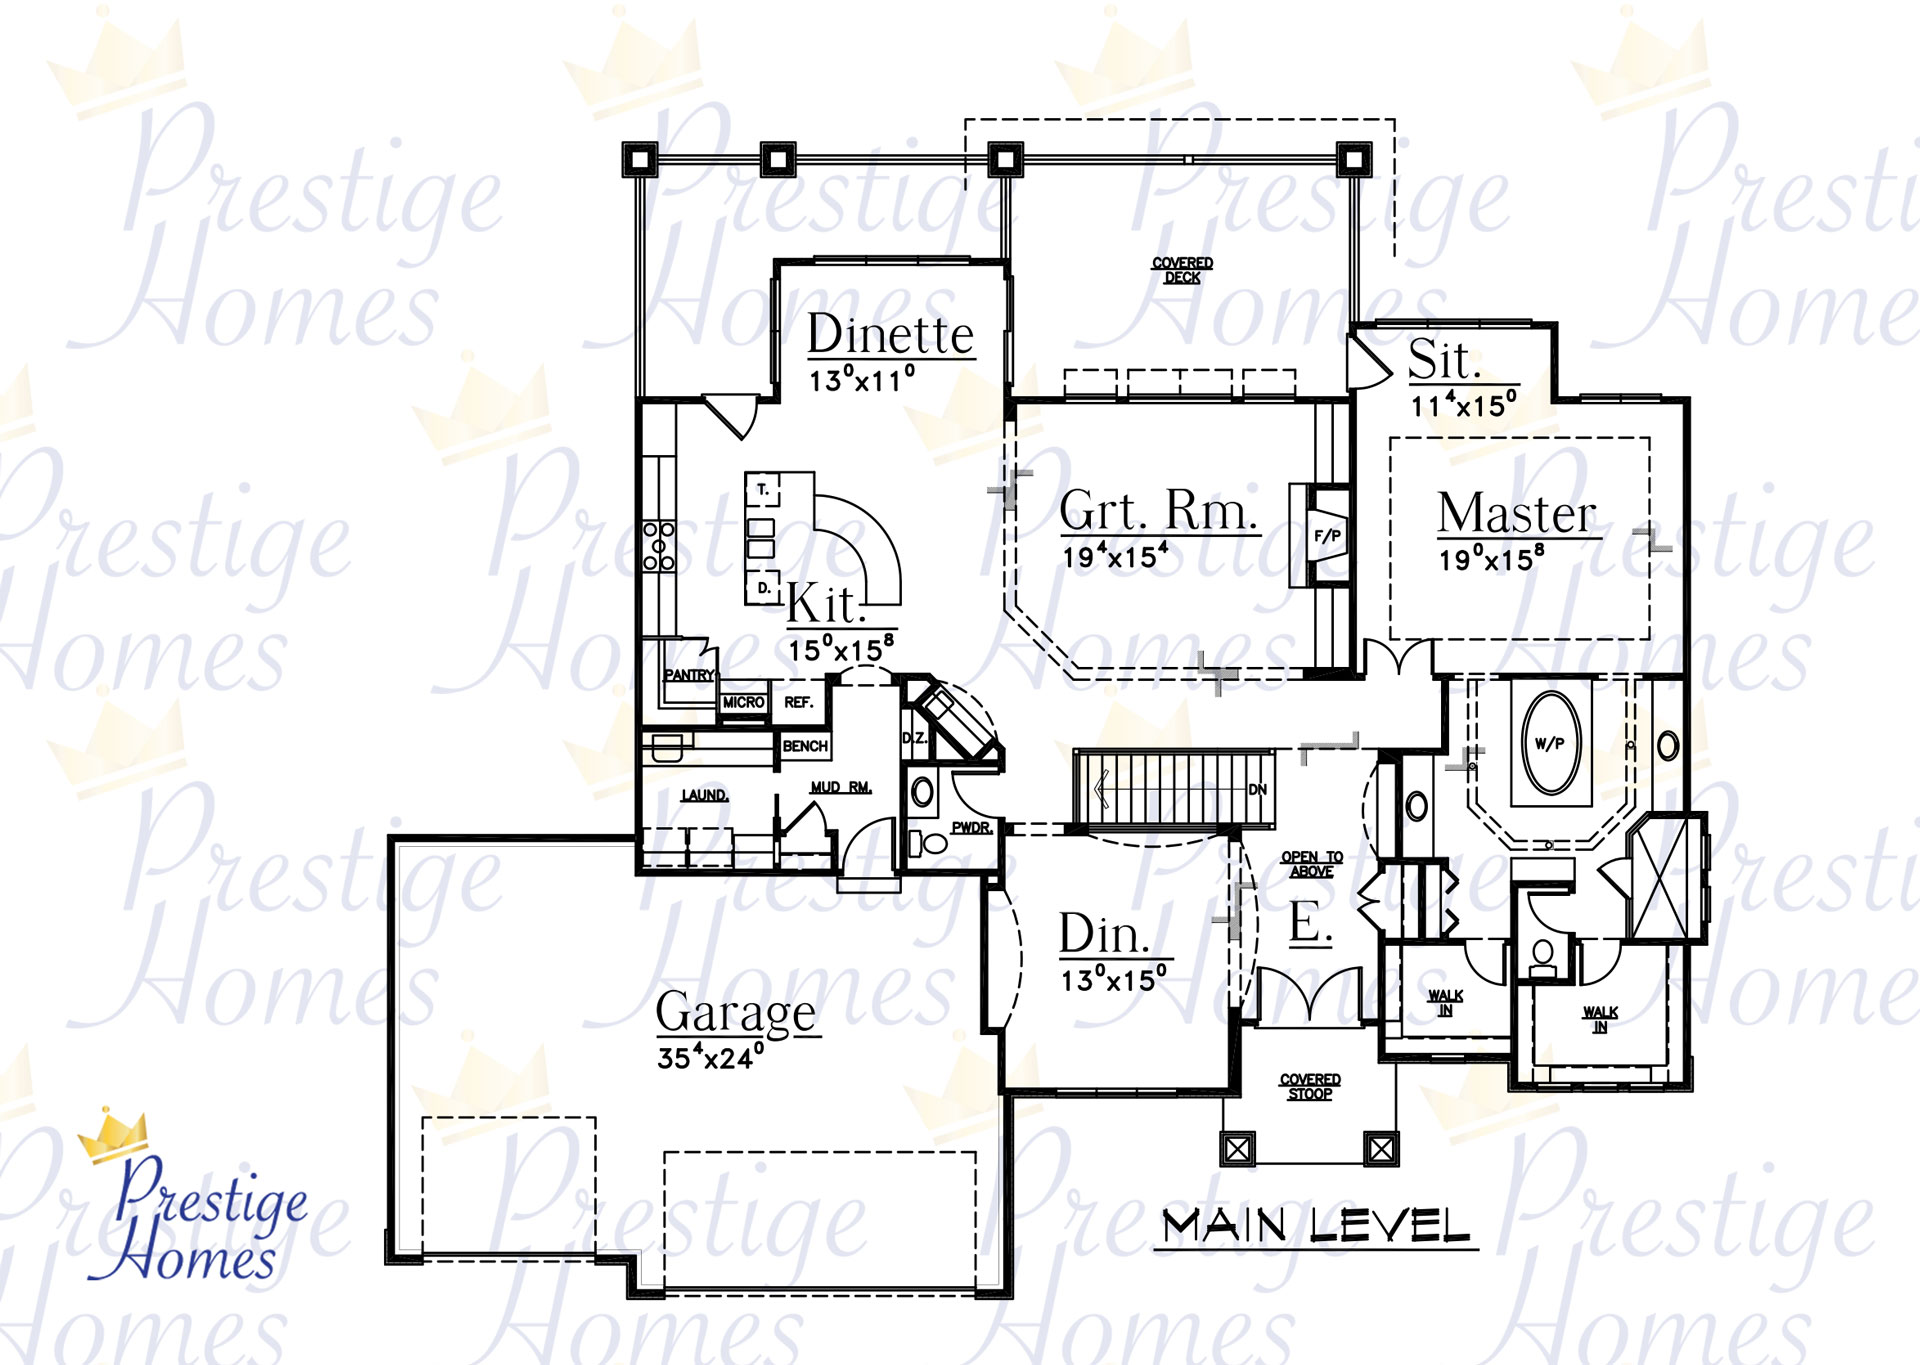 Prestige Homes - Floor Plan - Bella 3 Bedroom Main